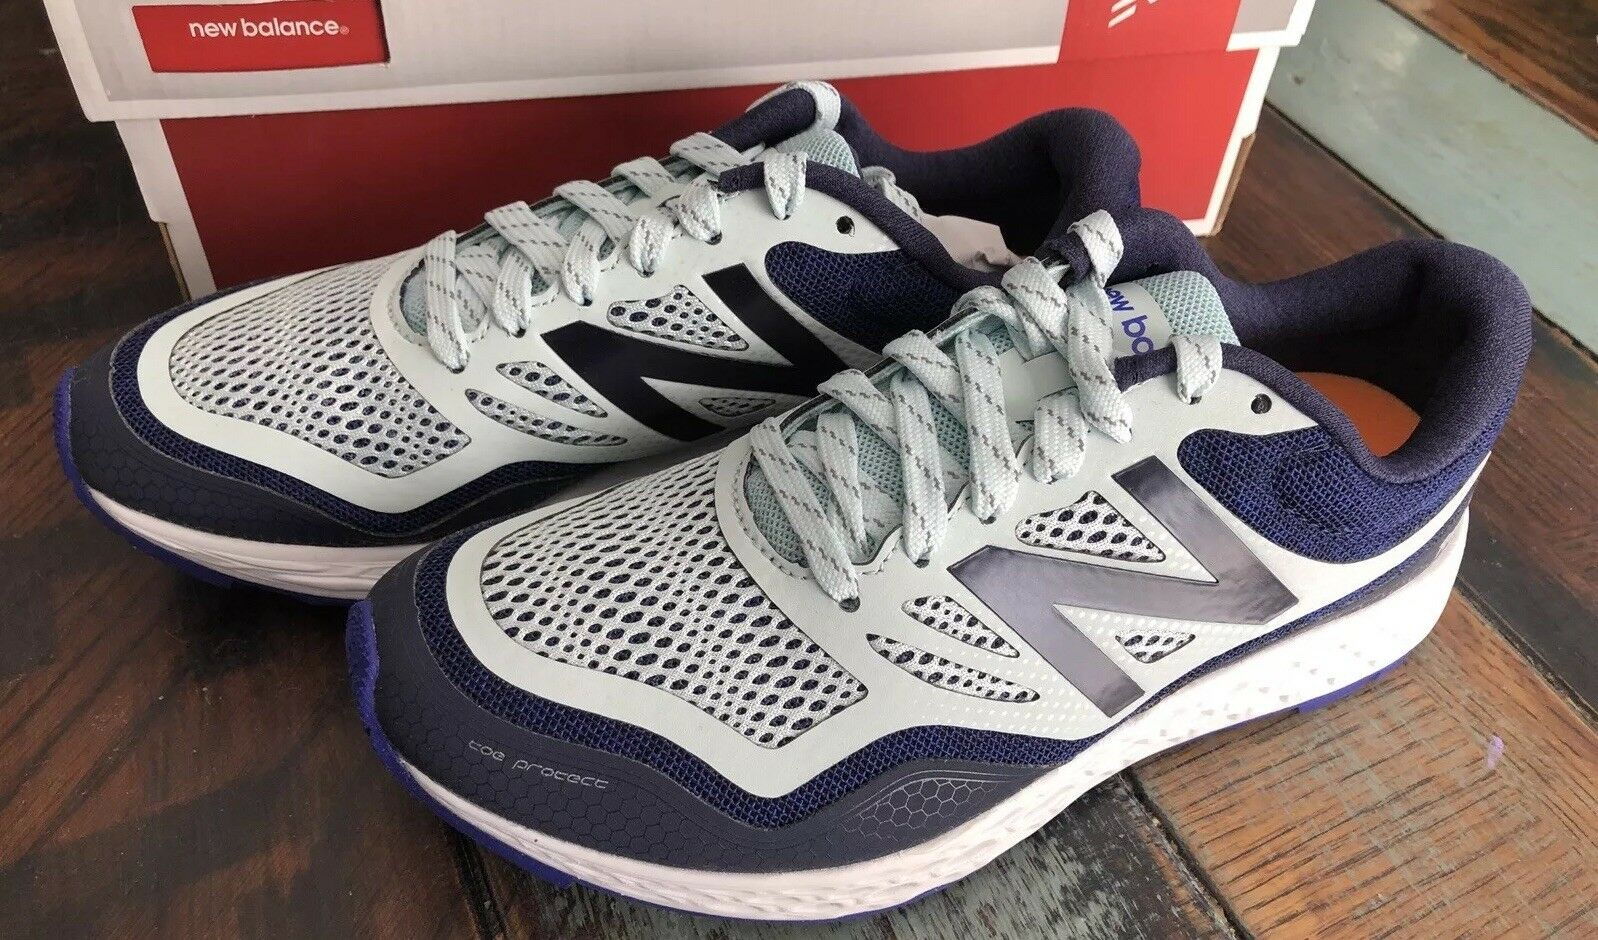 NEW BALANCE Womens WTGOBING bluee Trail Running Athletic Running shoes Size 6.5